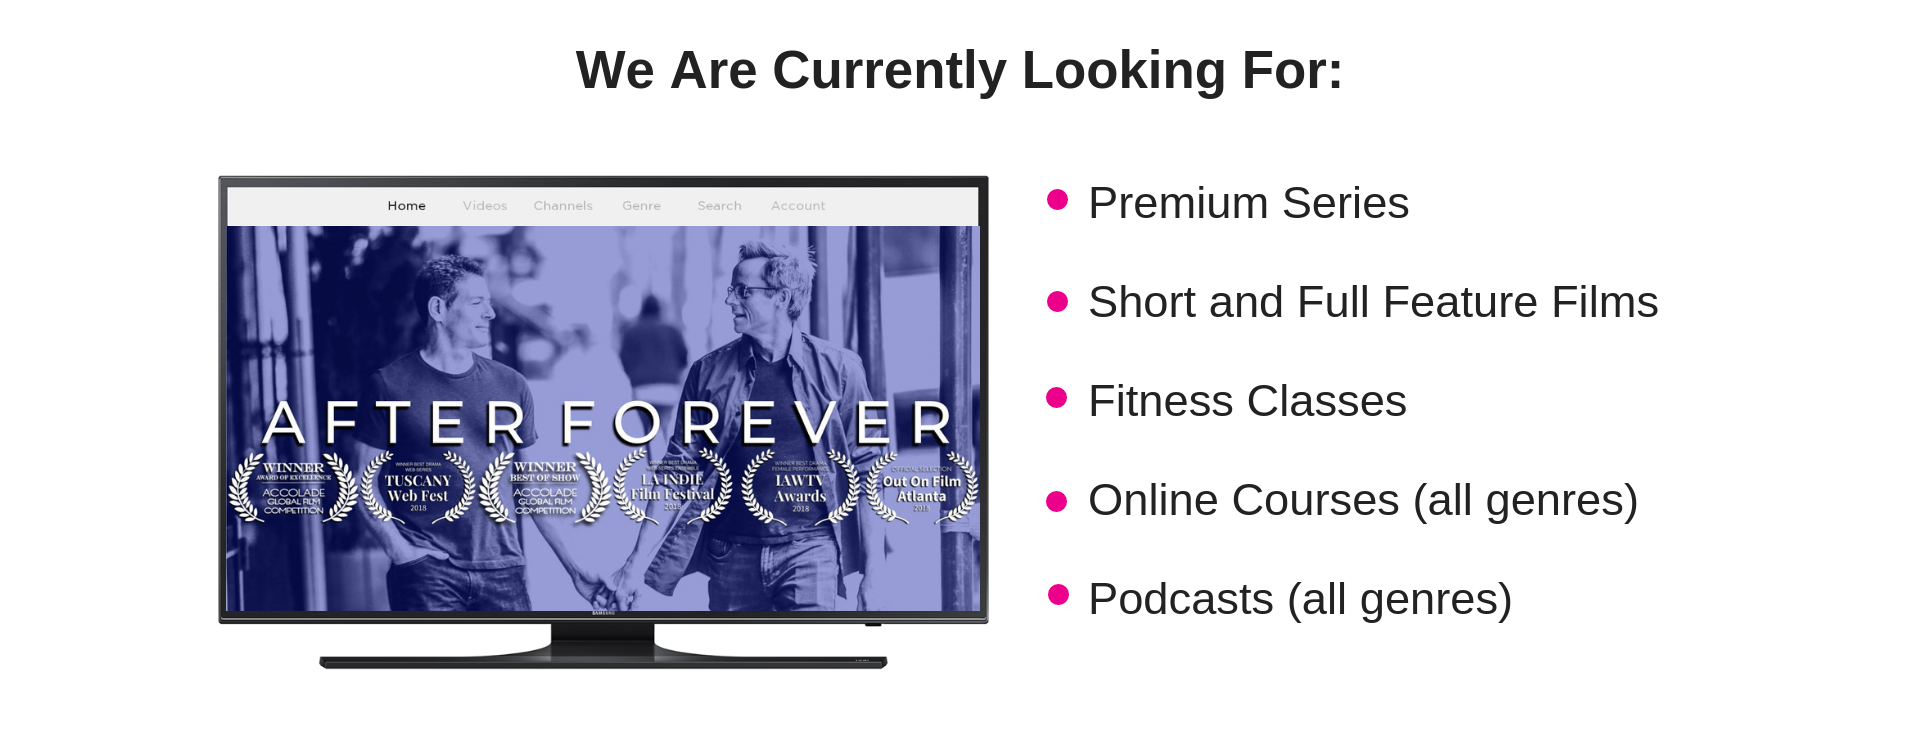 We are looking for premium series, films, fitness classes, cooking classes, podcasts and more.